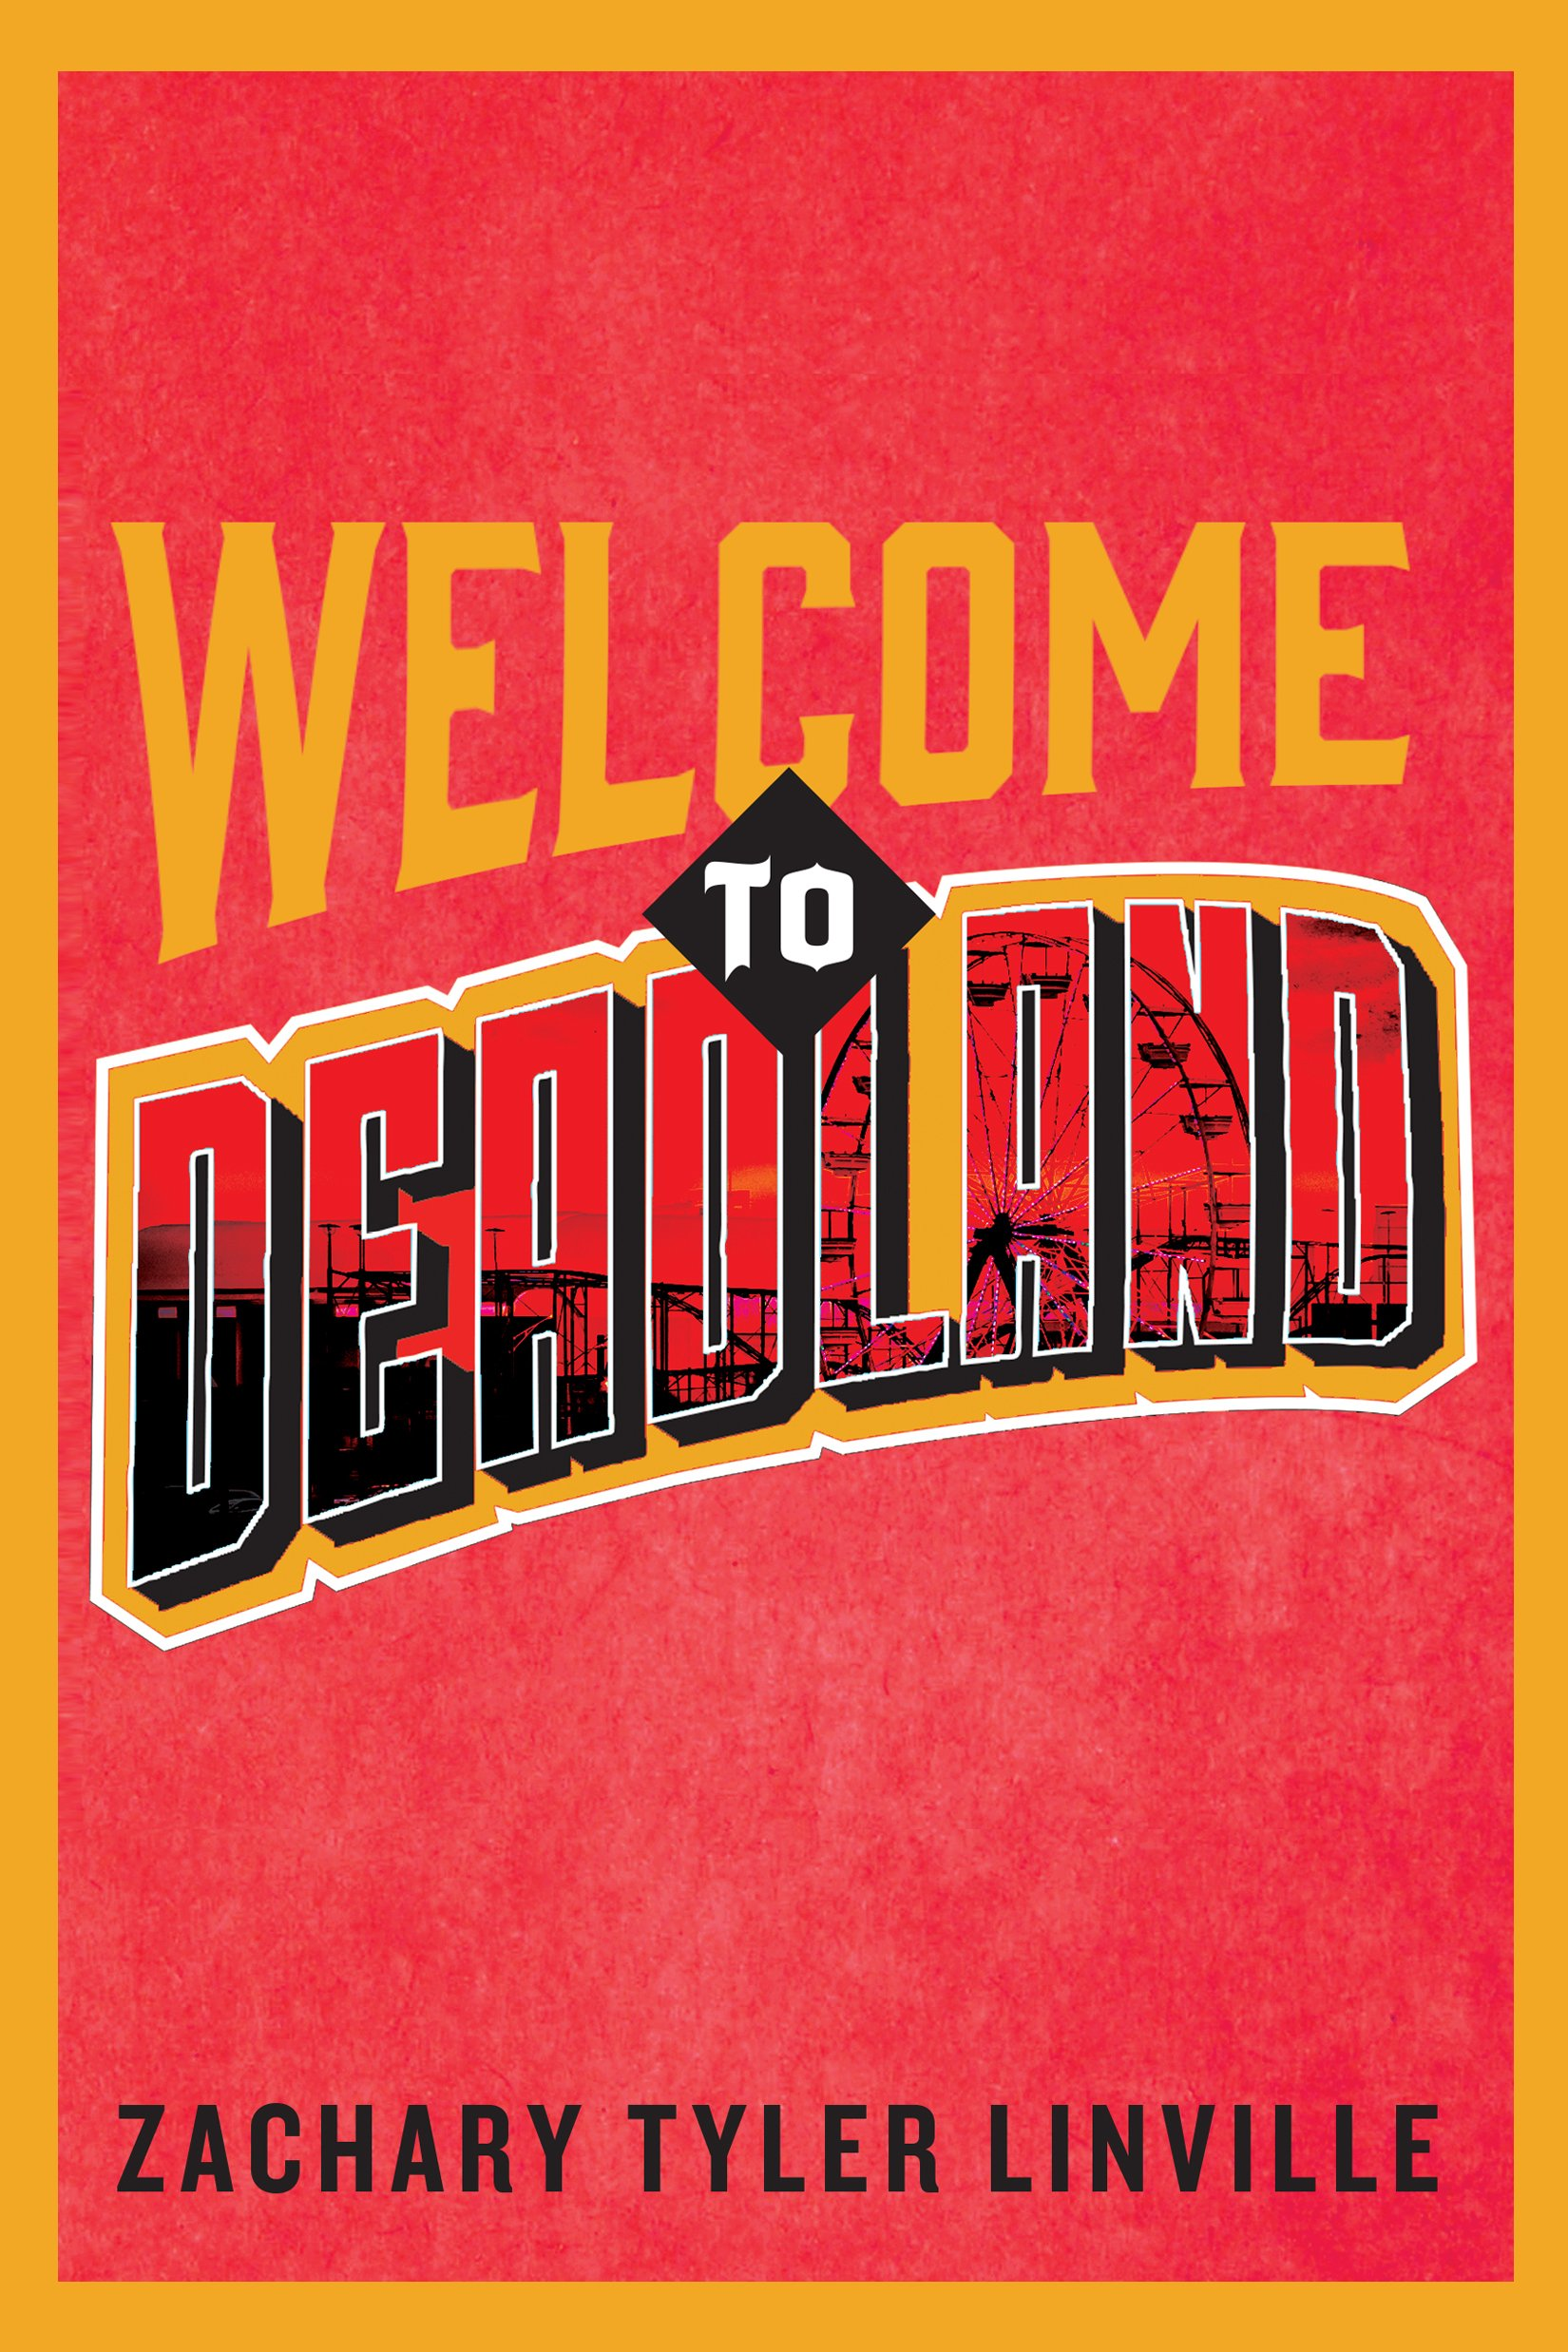 welcometodeadland - Nerdist Says Welcome to Deadland in August